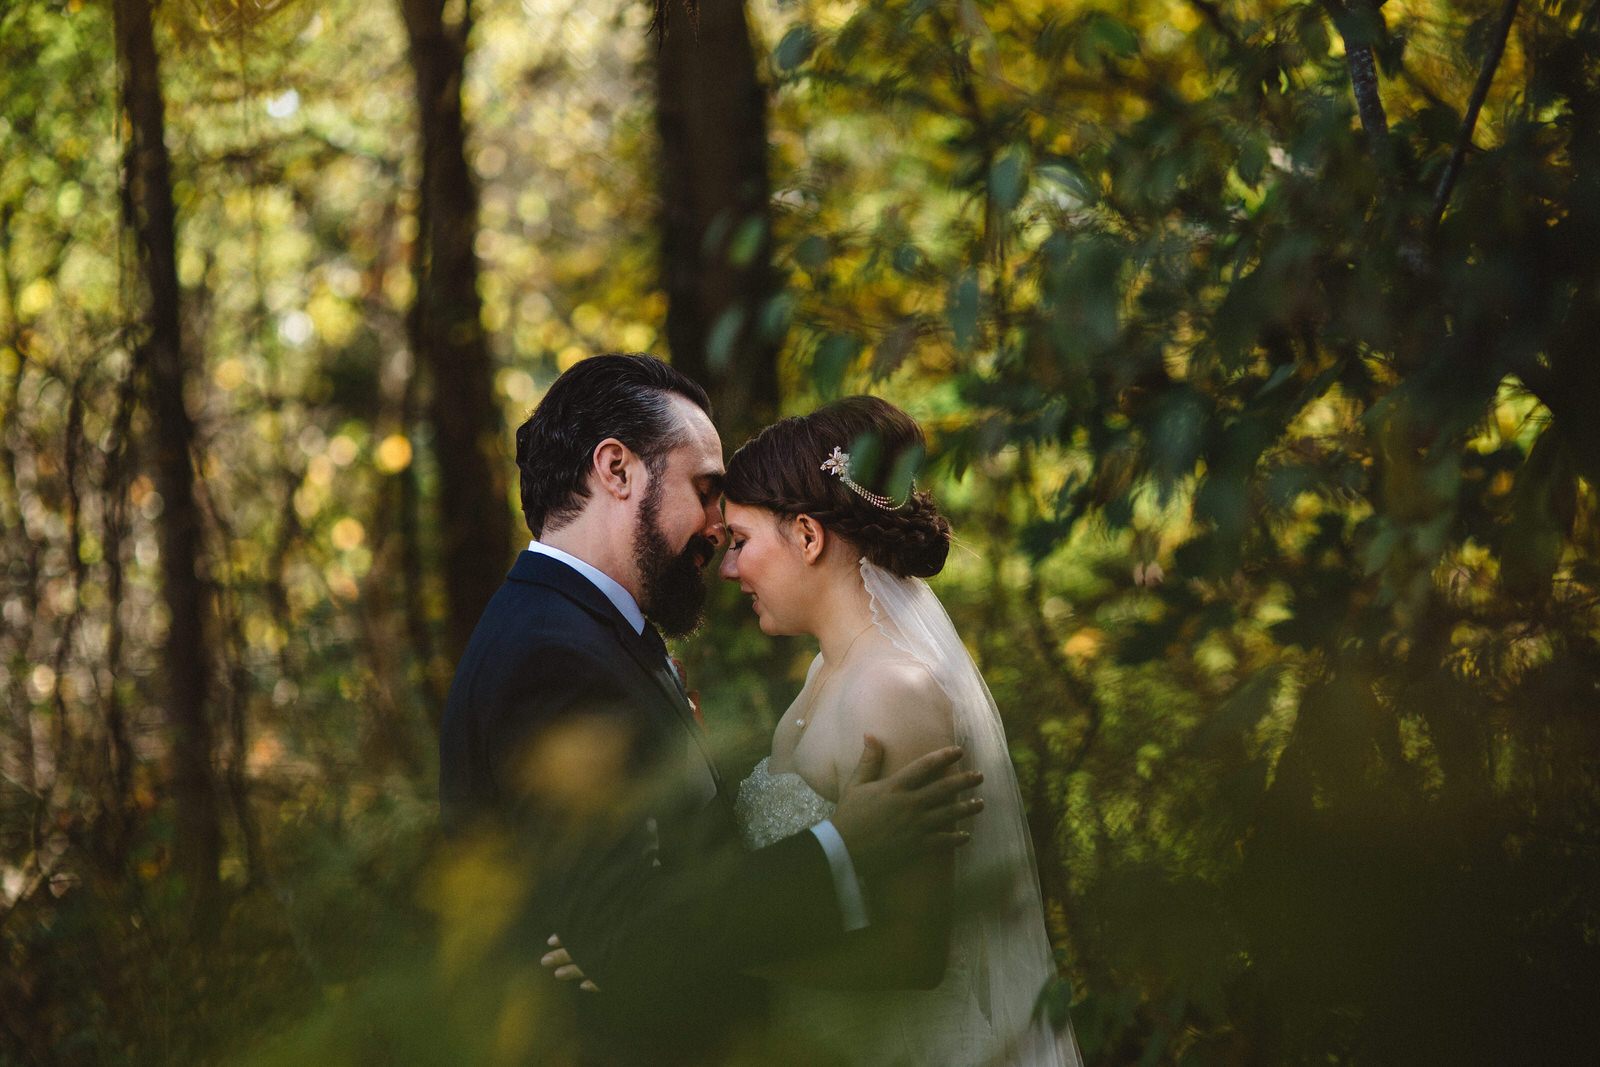 Portland Seattle Destination Wedding Photographer Michigan Millcreek Wilde Barn0039.JPG